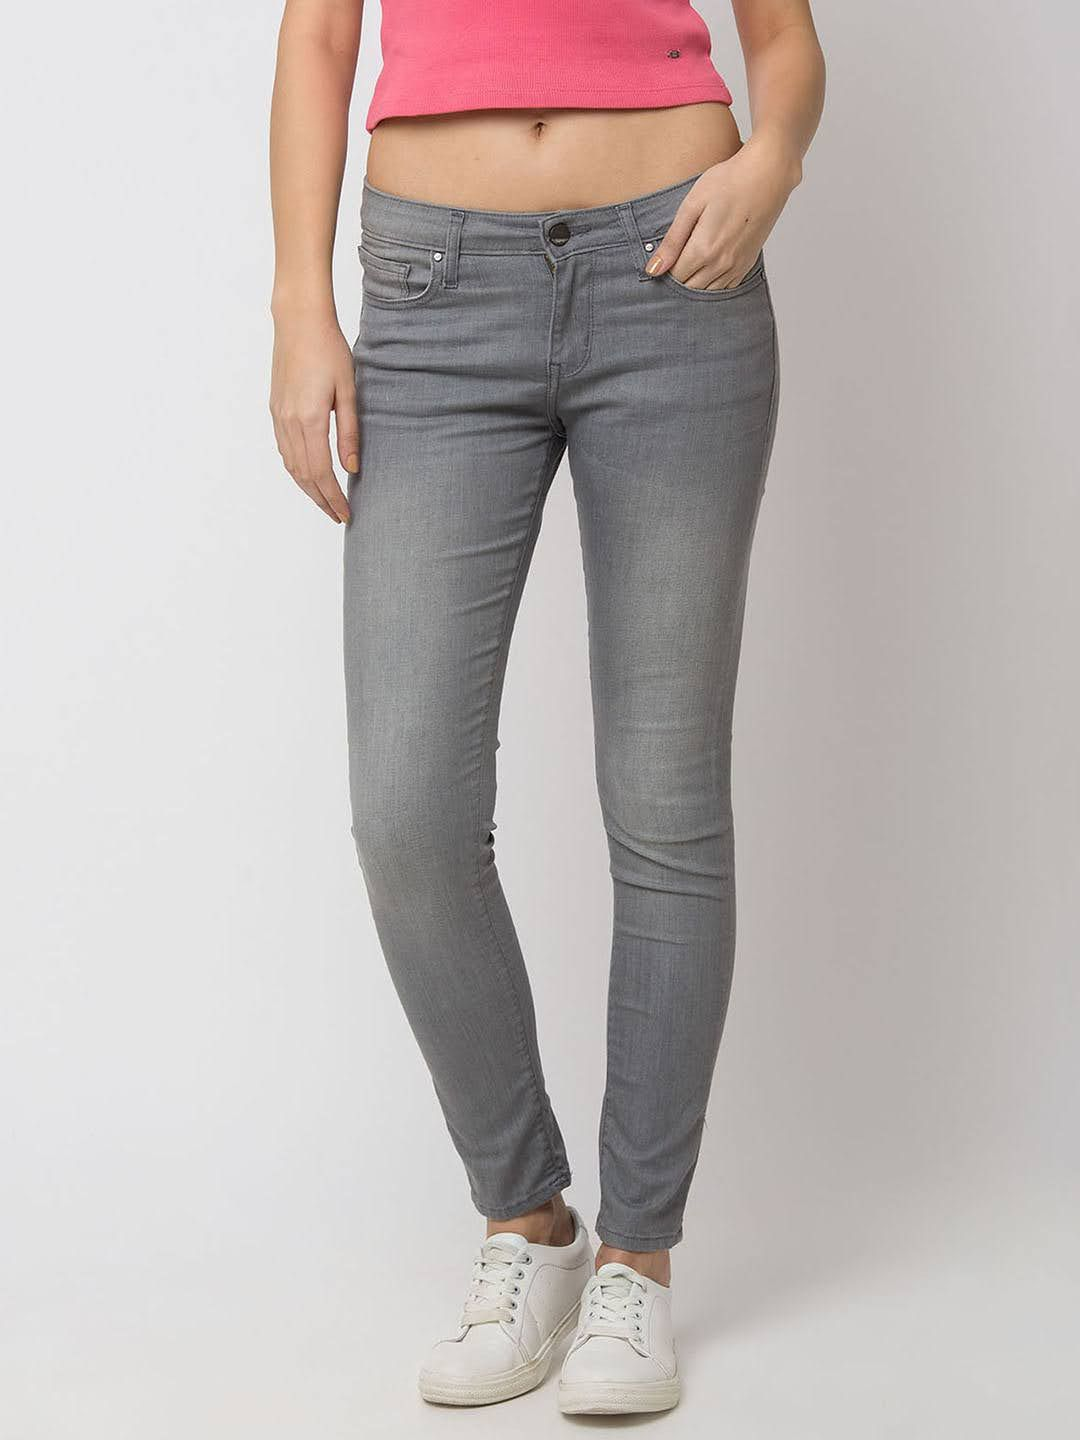 Spykar Grey Cotton Jeans